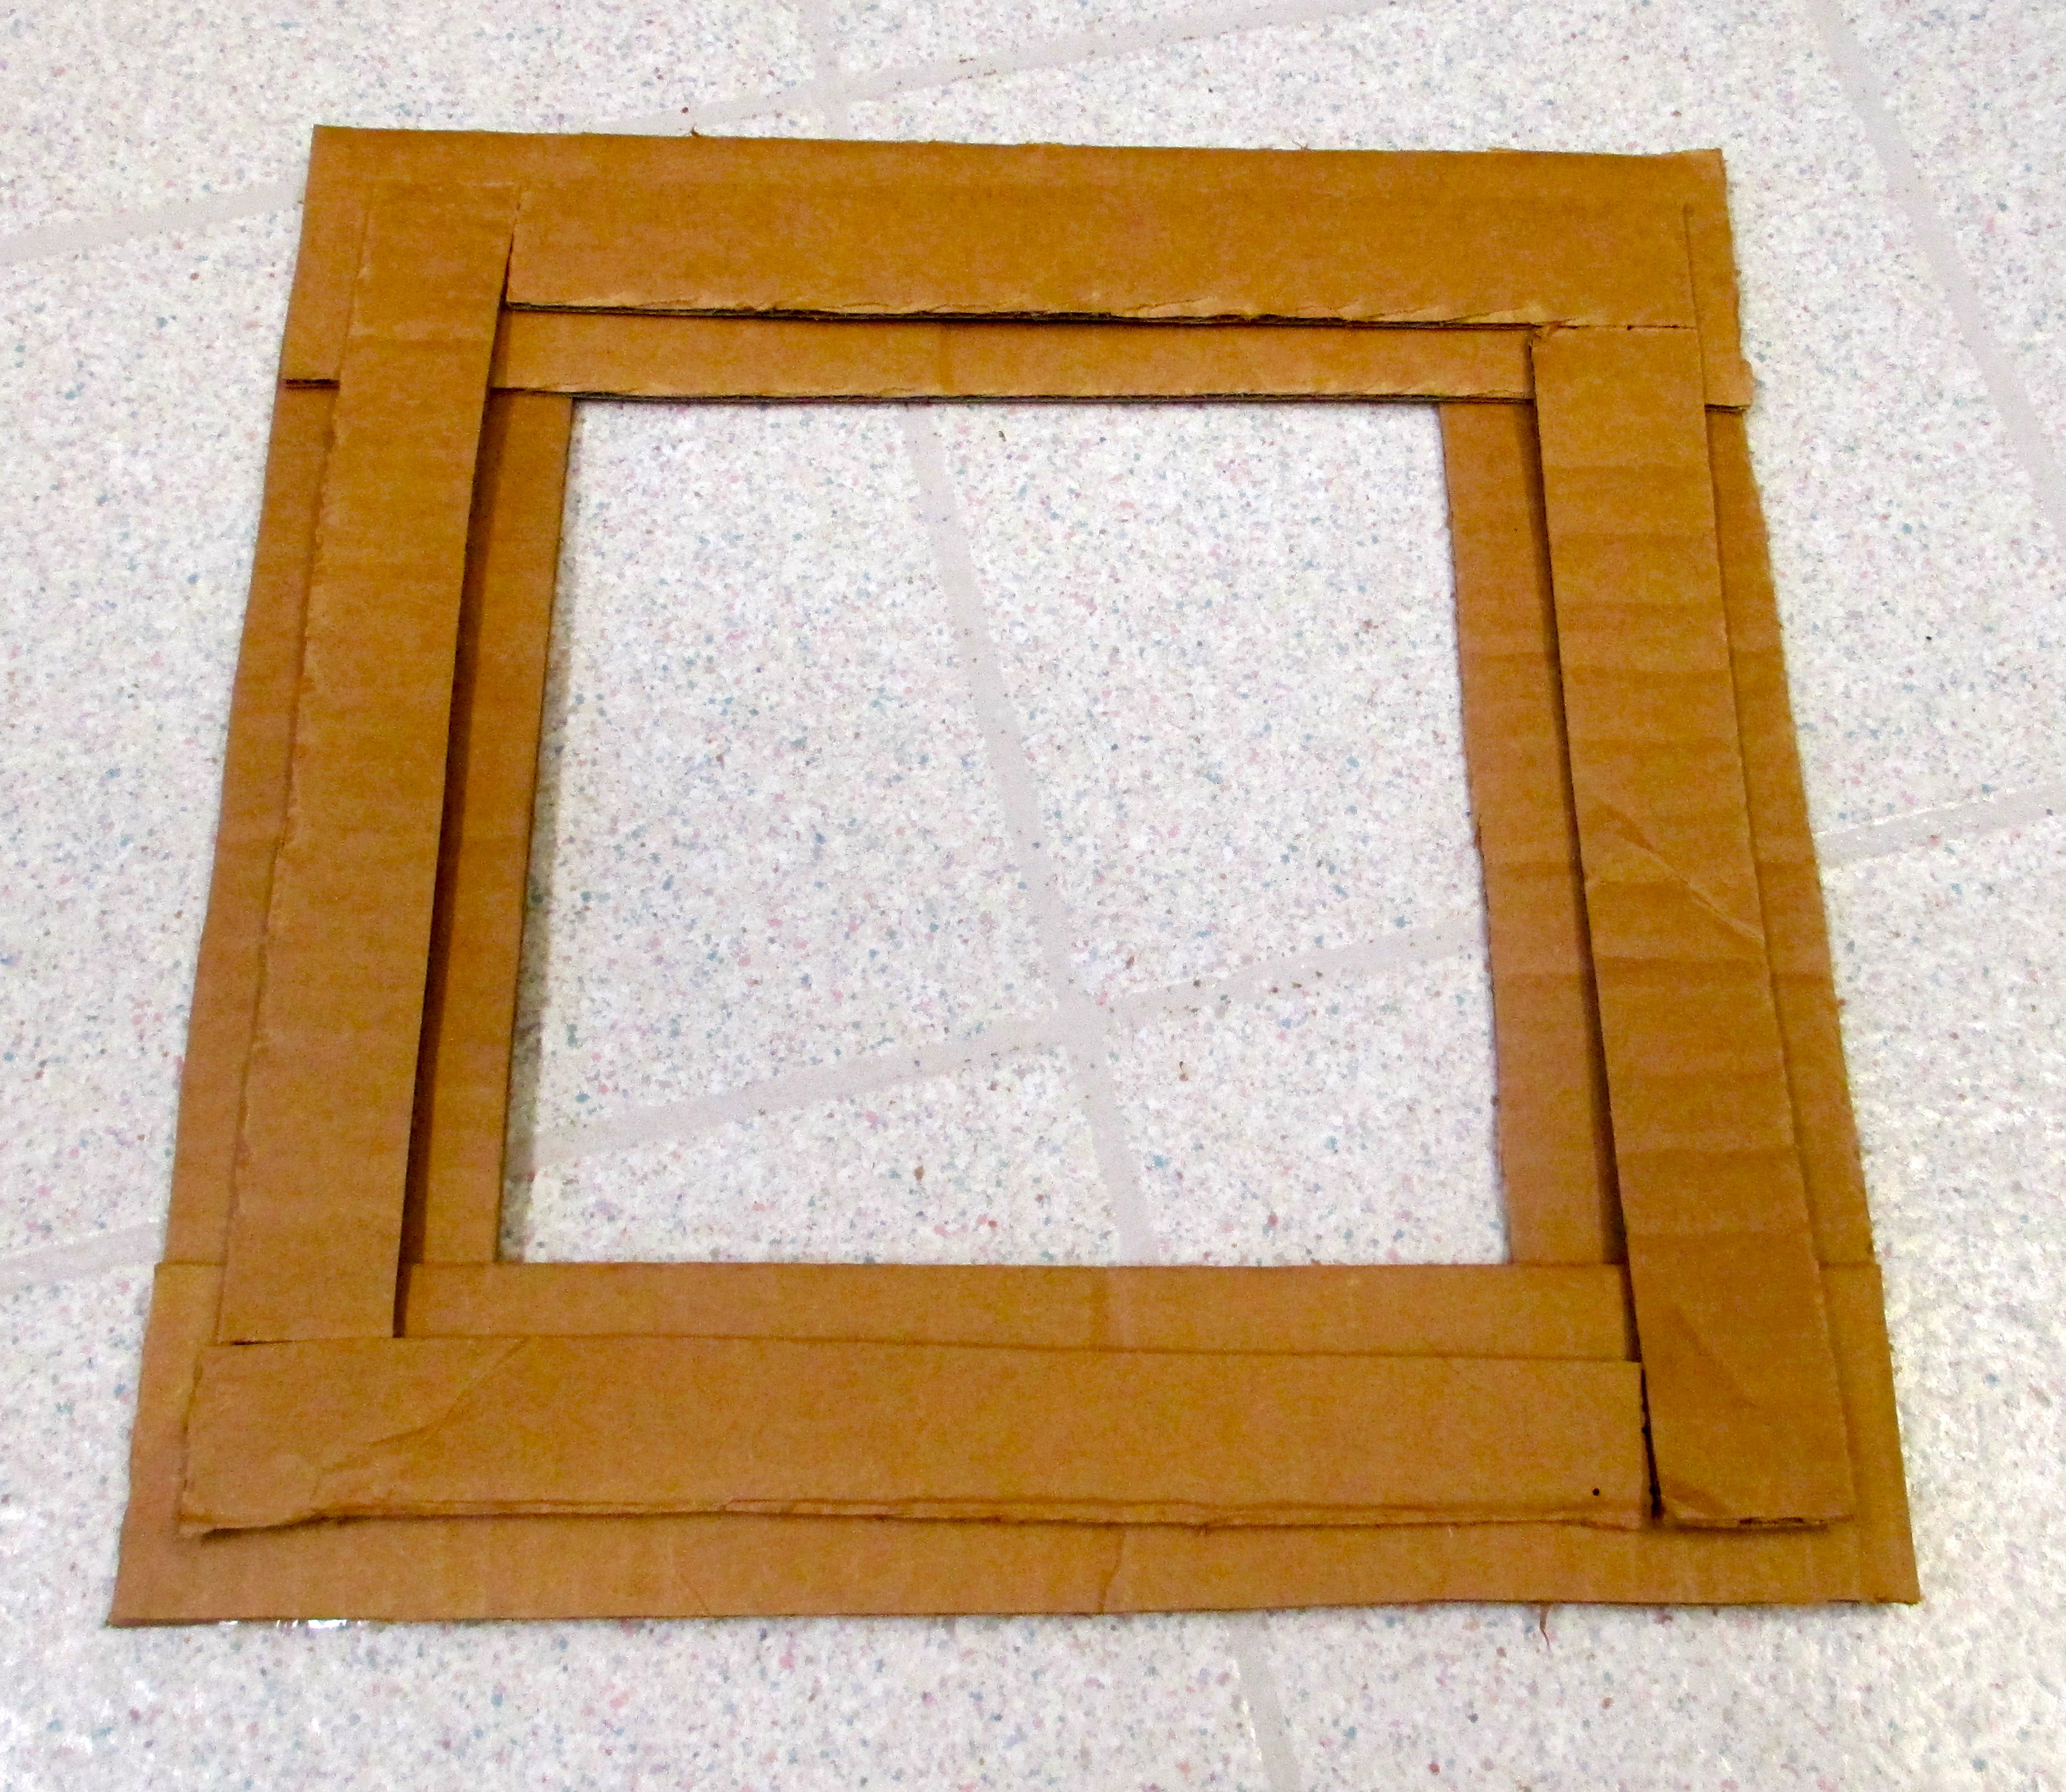 Picture of Use Double-sided Tape to Layer New Flaps Atop Frame Foundation.